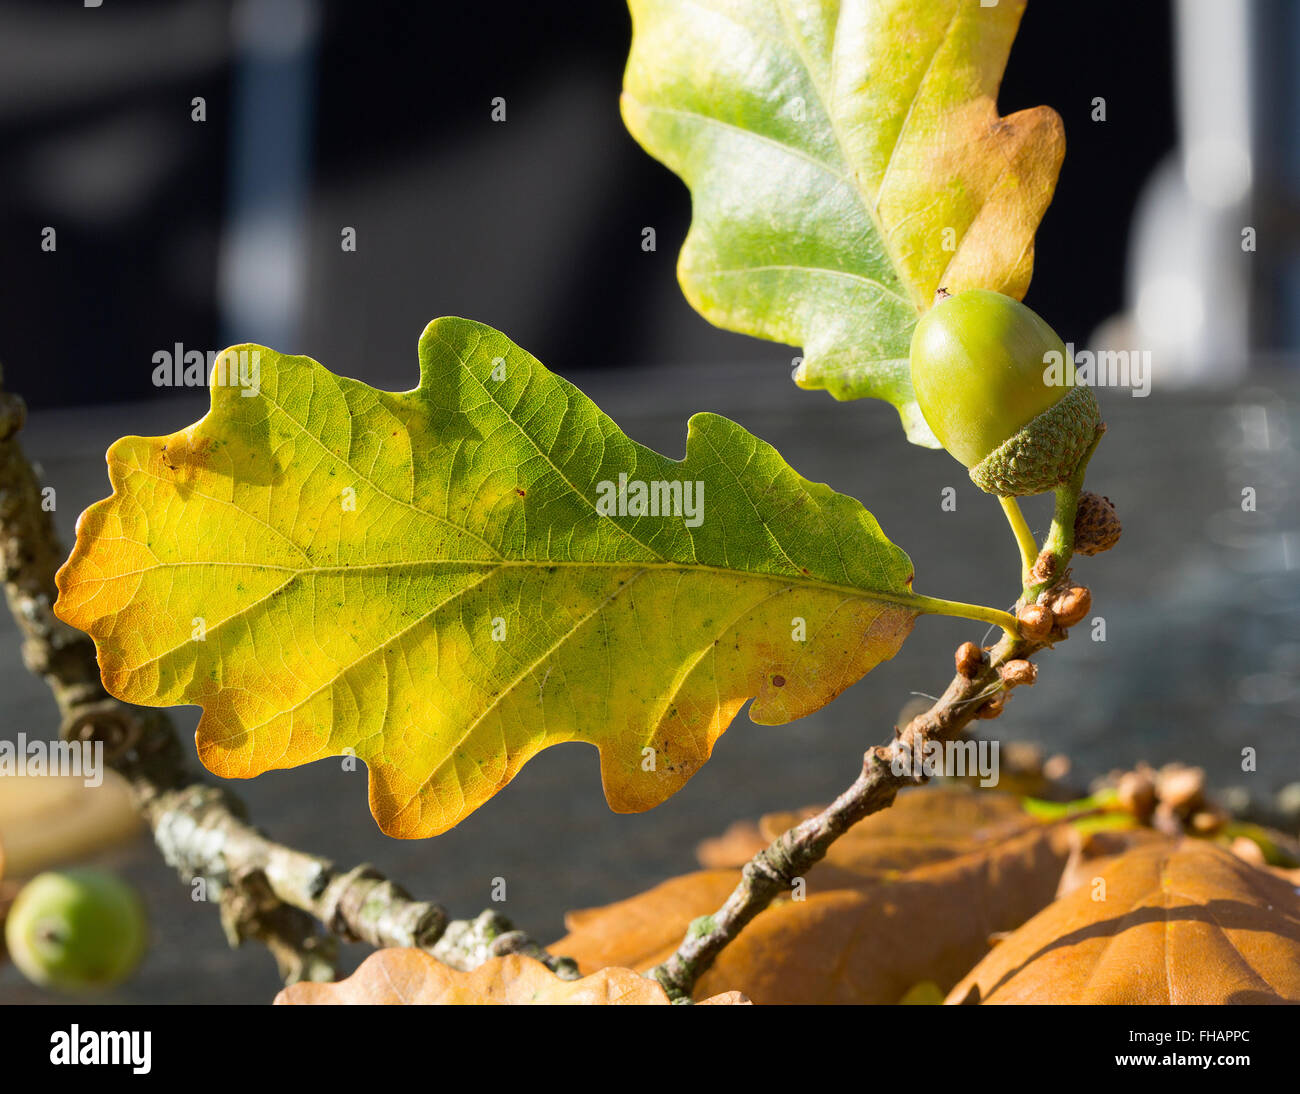 Acorn and Leaf in Autumn Sun - Stock Image